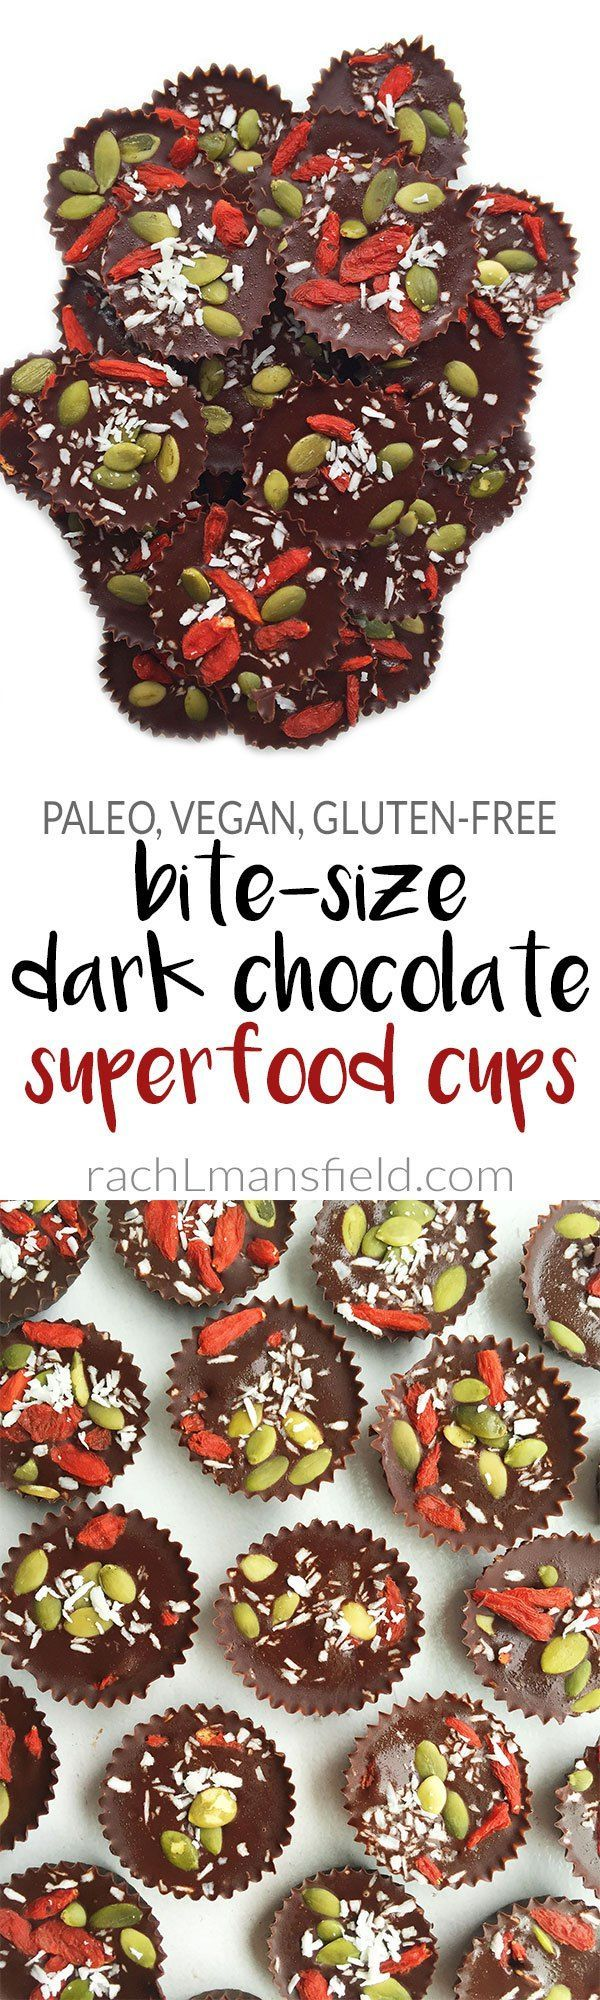 Easy Bite-Sized Vegan Dark Chocolate Superfood Cups packed with essential superfoods like goji berries, coconut flakes & pumpkin seeds